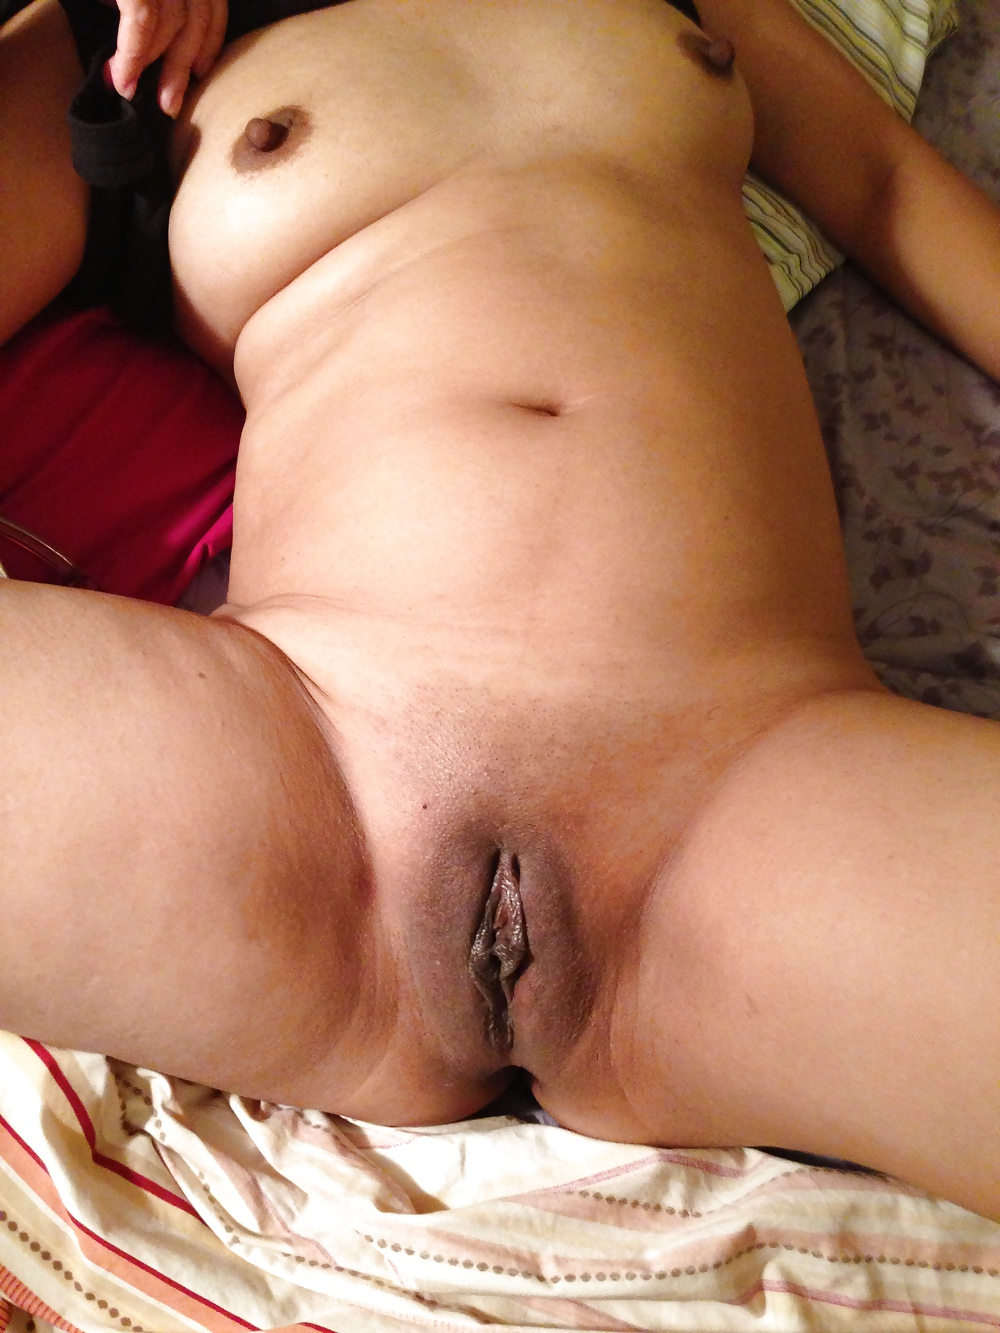 Who wants to use my wife's pussy